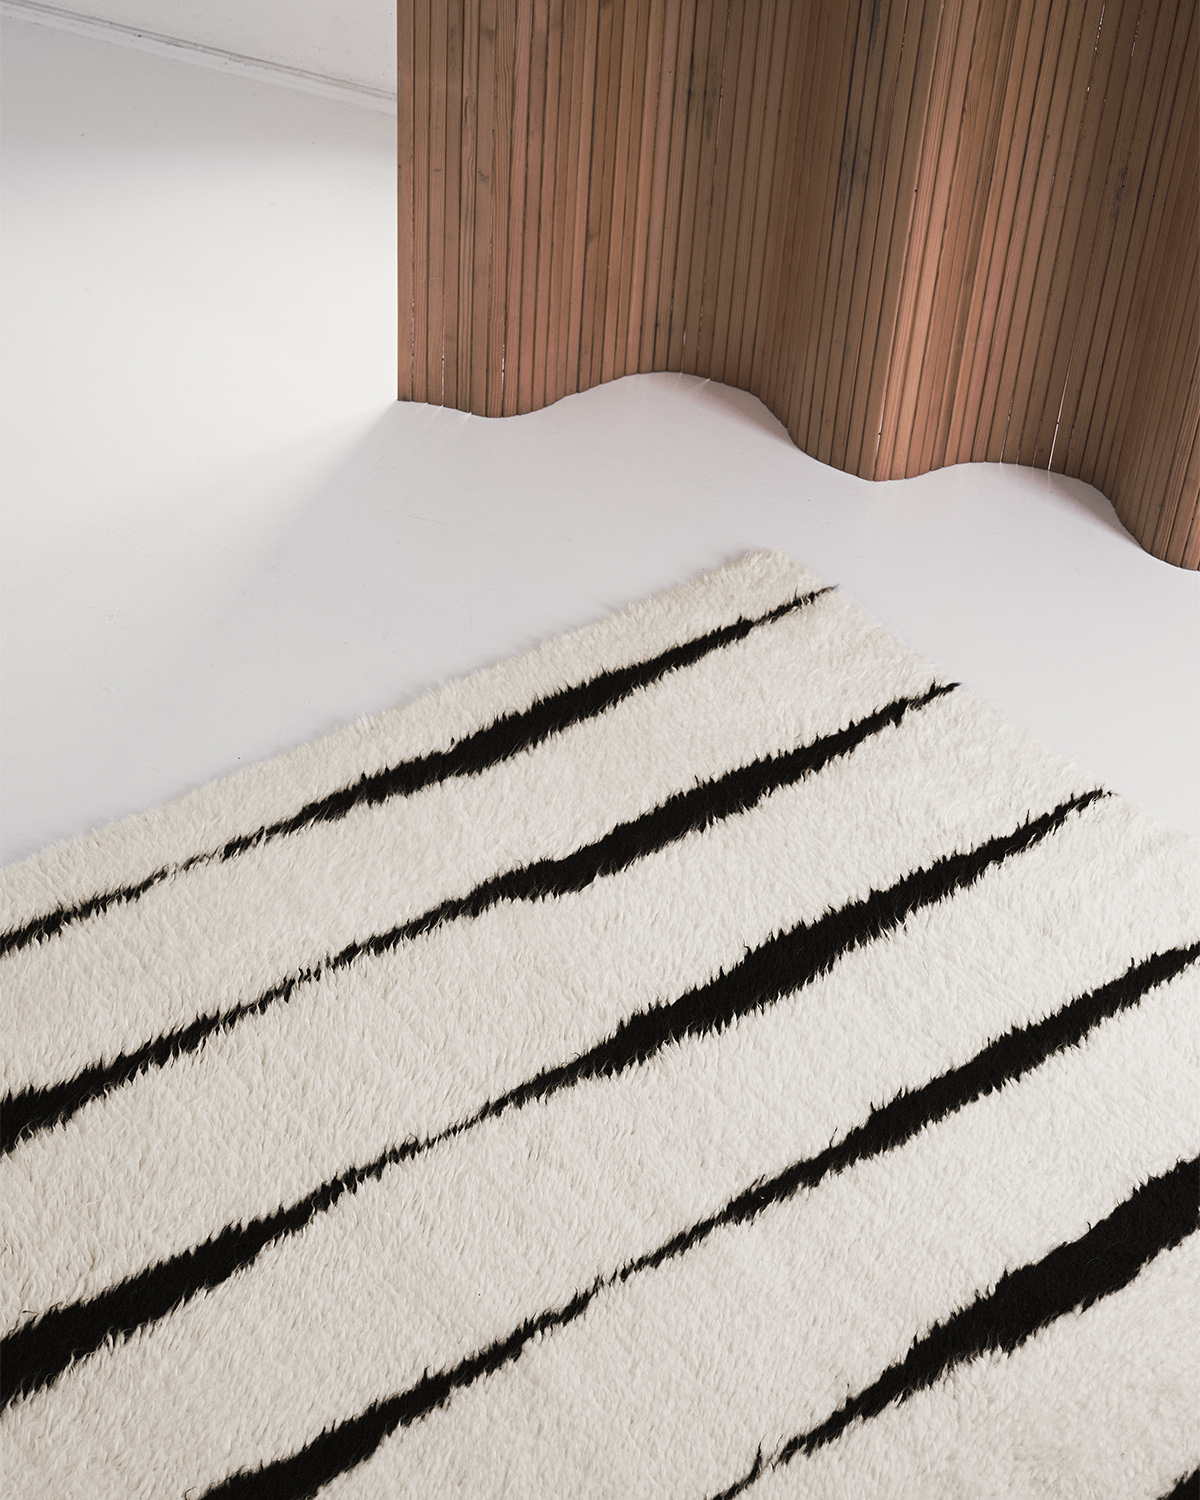 Close-up of the Fjord rug in color Cream and Black, showing the materials and texture.